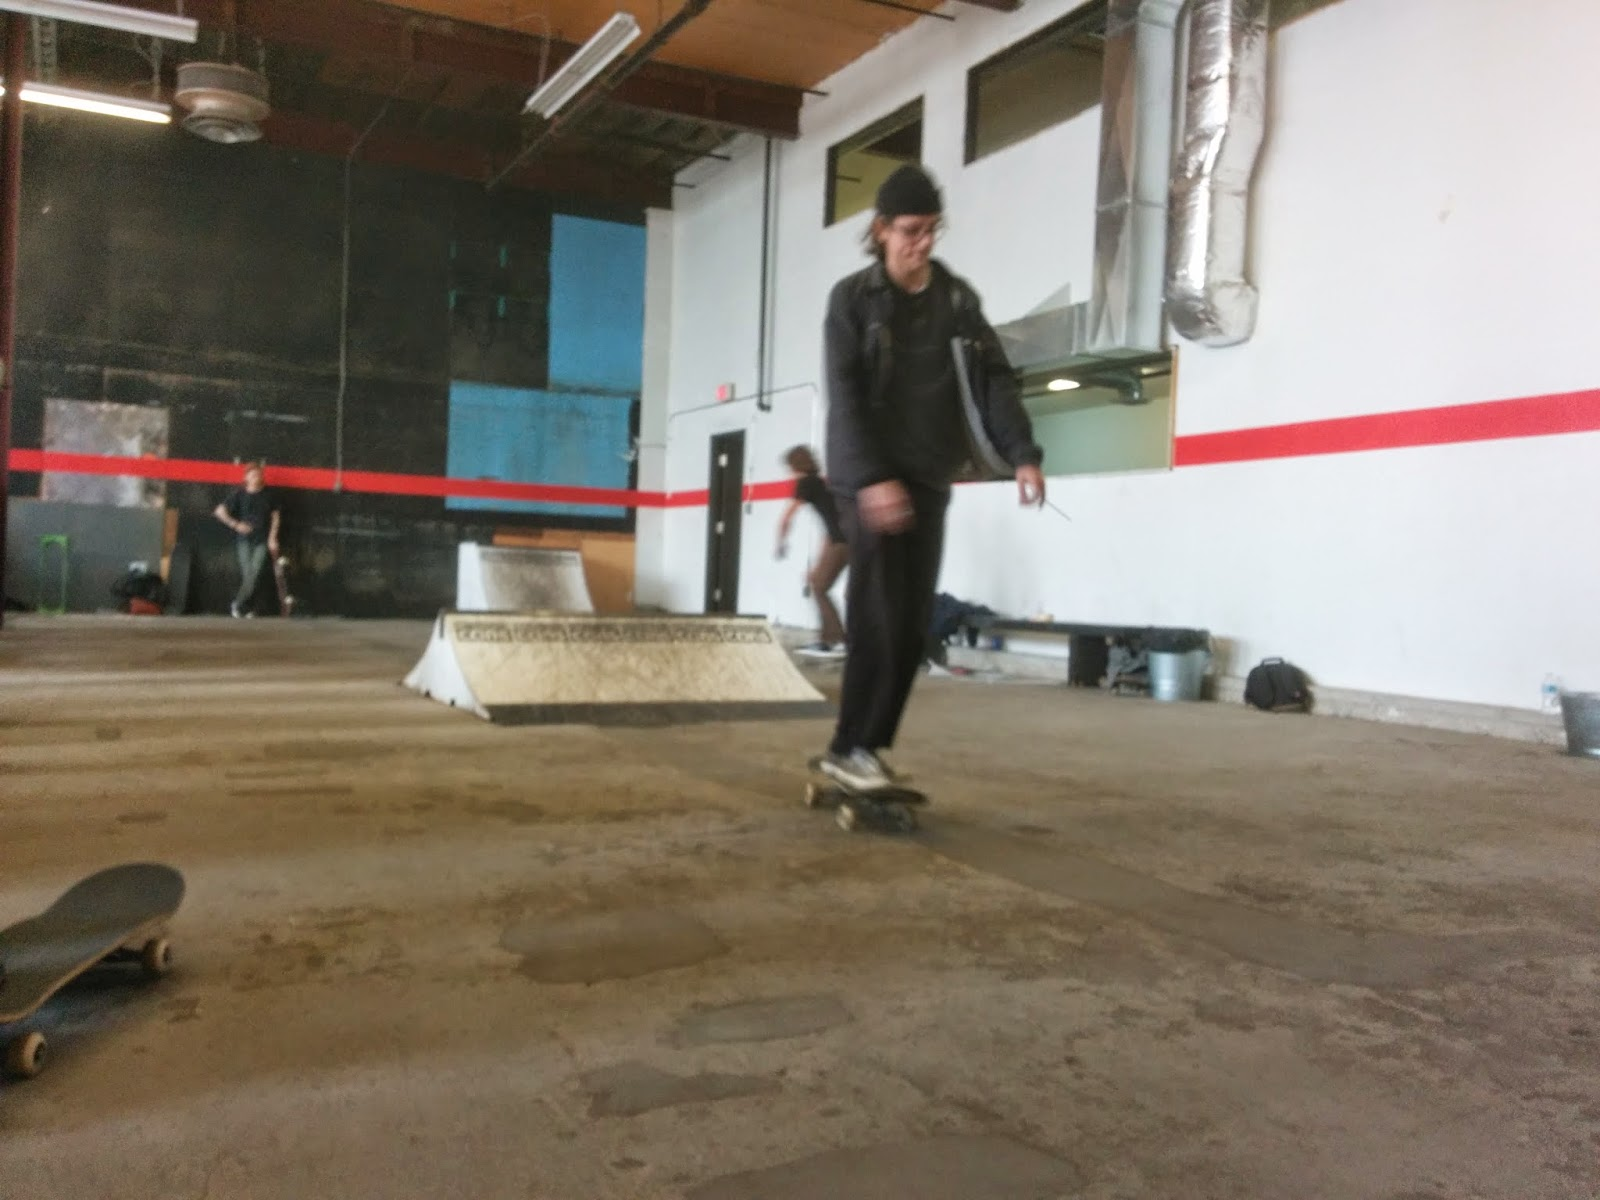 F 197 199 197 De The Blog Converse Cons Project Toronto Making And